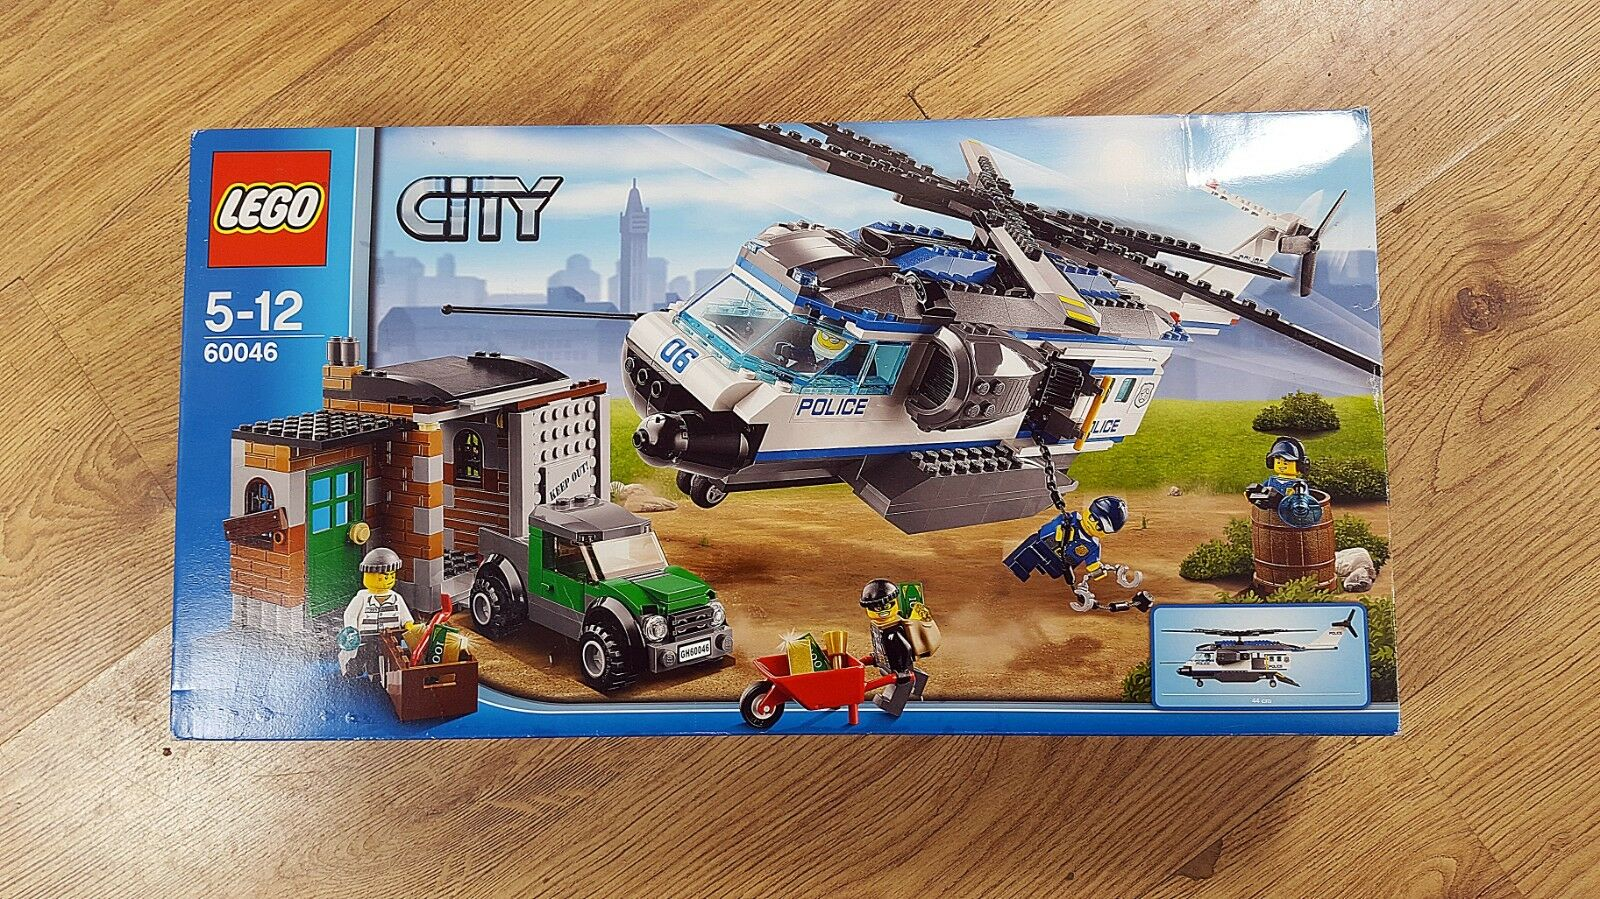 LEGO City 60046 Helicopter Surveillance (2016)     New, Unopened. Great Condition  08779e